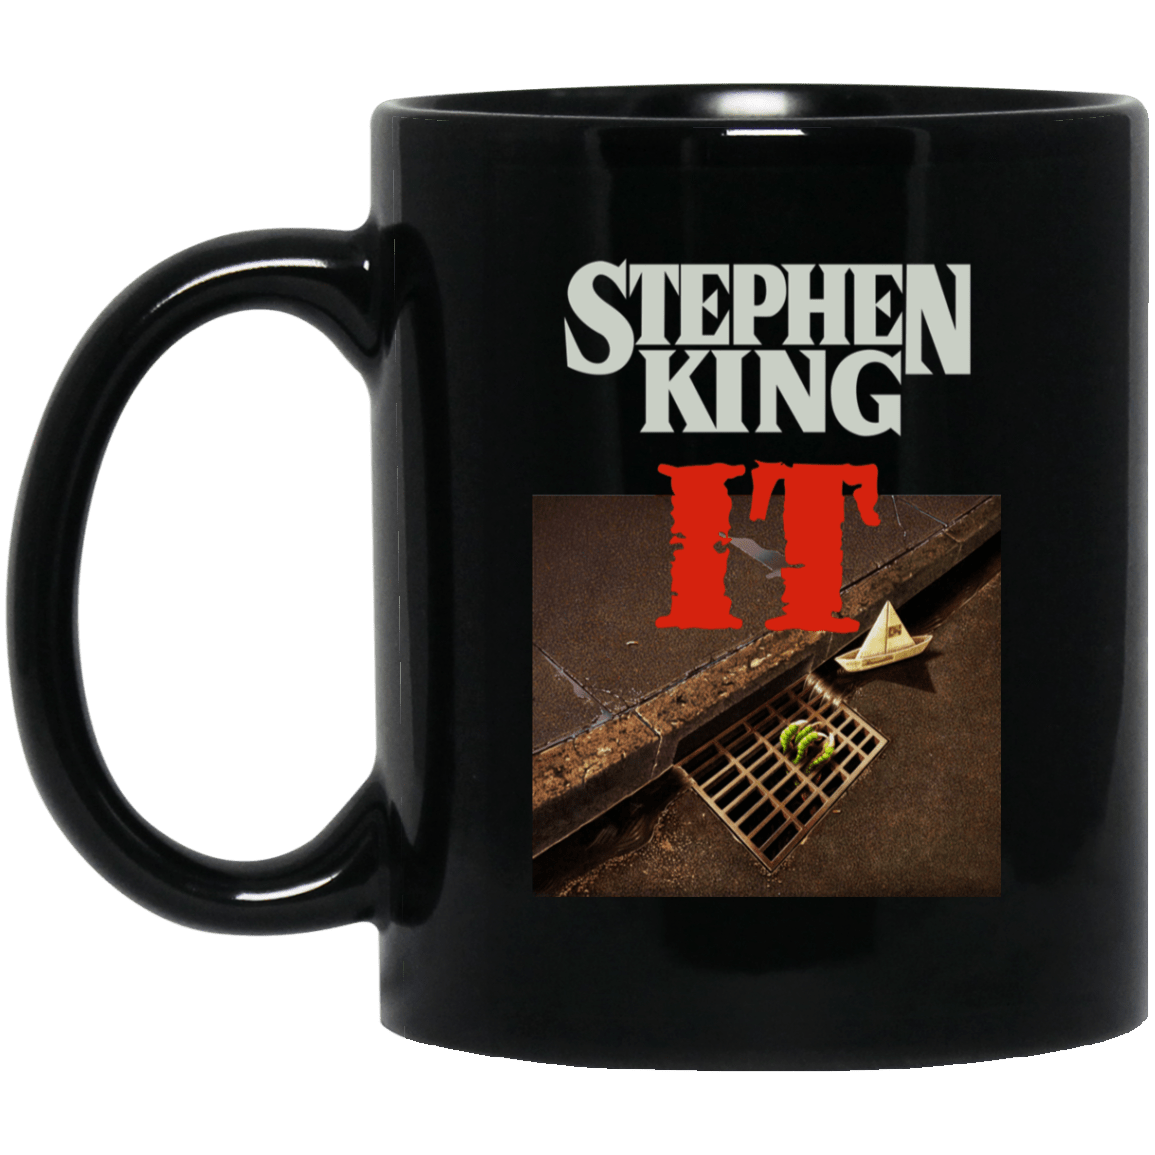 Stephen King It Black Mug 1065-10181-92839353-49307 - Tee Ript